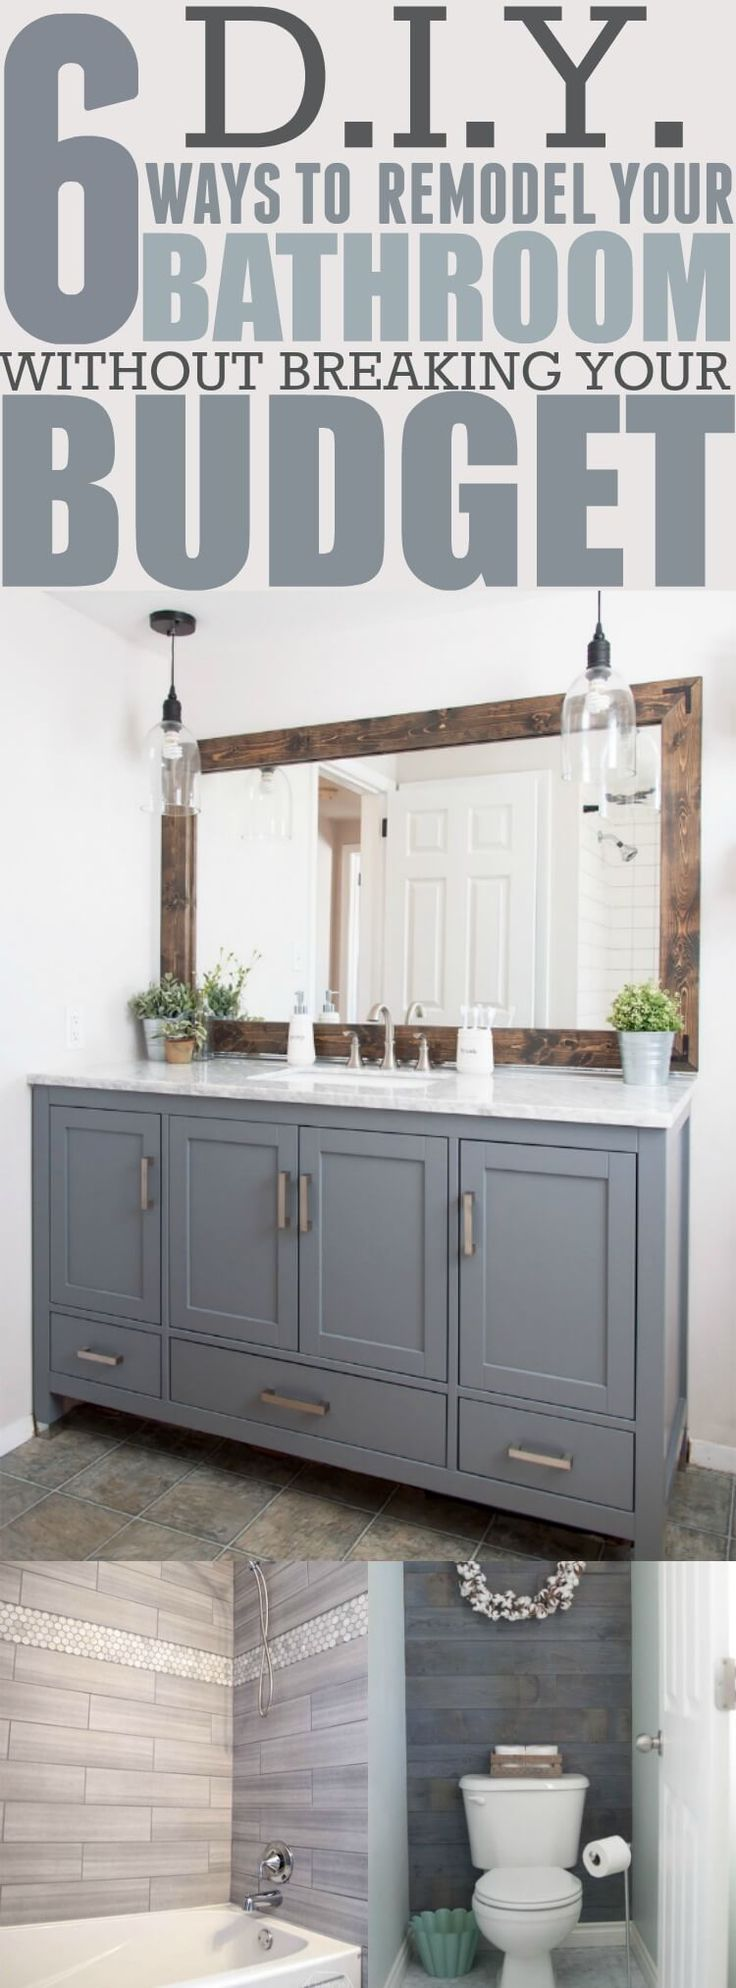 best 25 bathroom remodeling ideas on pinterest small bathroom there are so many ways you can make your bathroom look modern without going over your